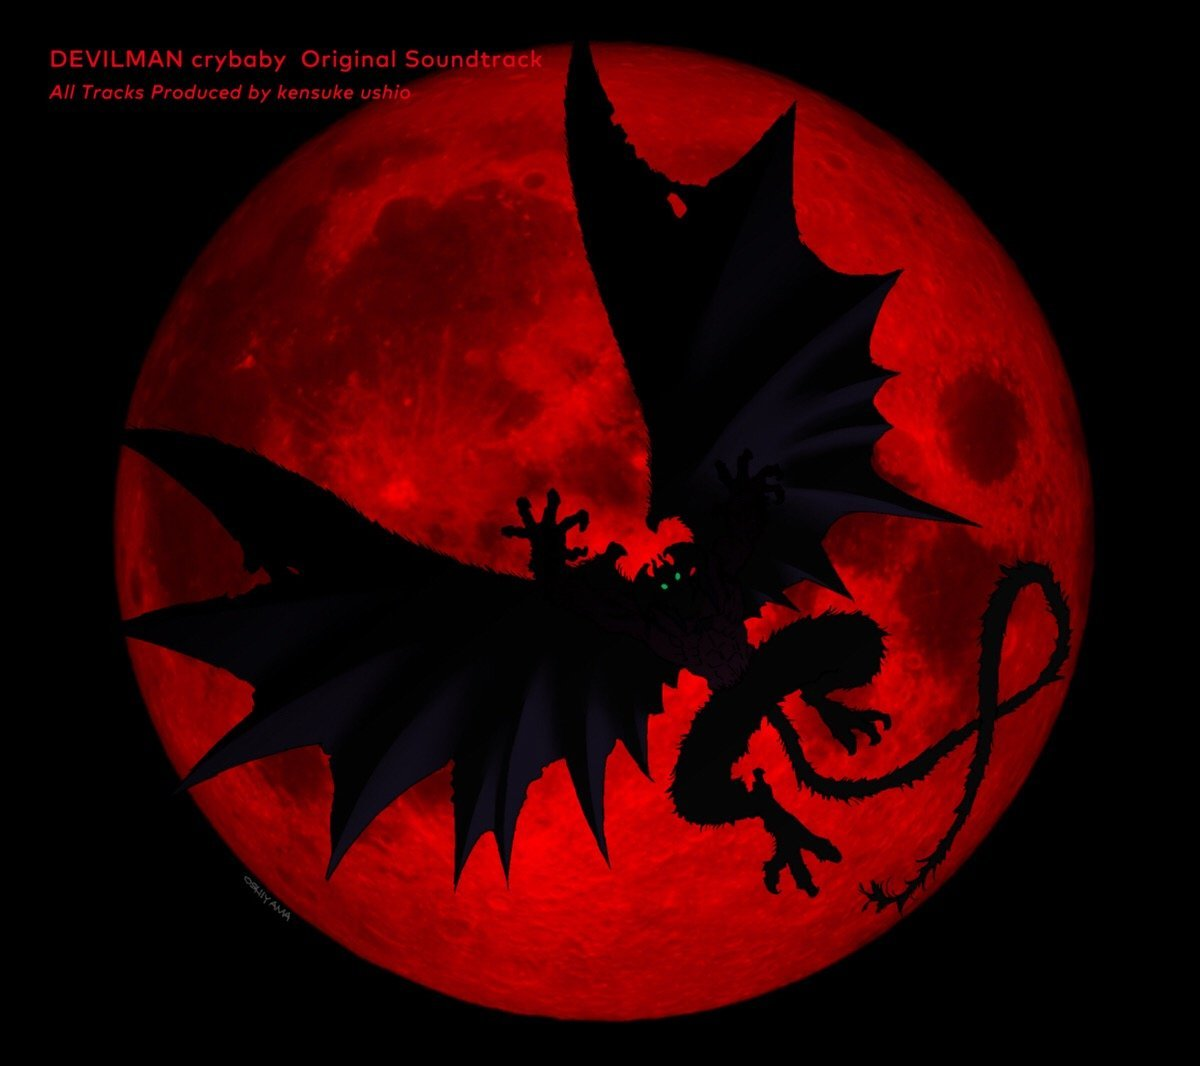 DEVILMAN crybaby Original Soundtrack画像